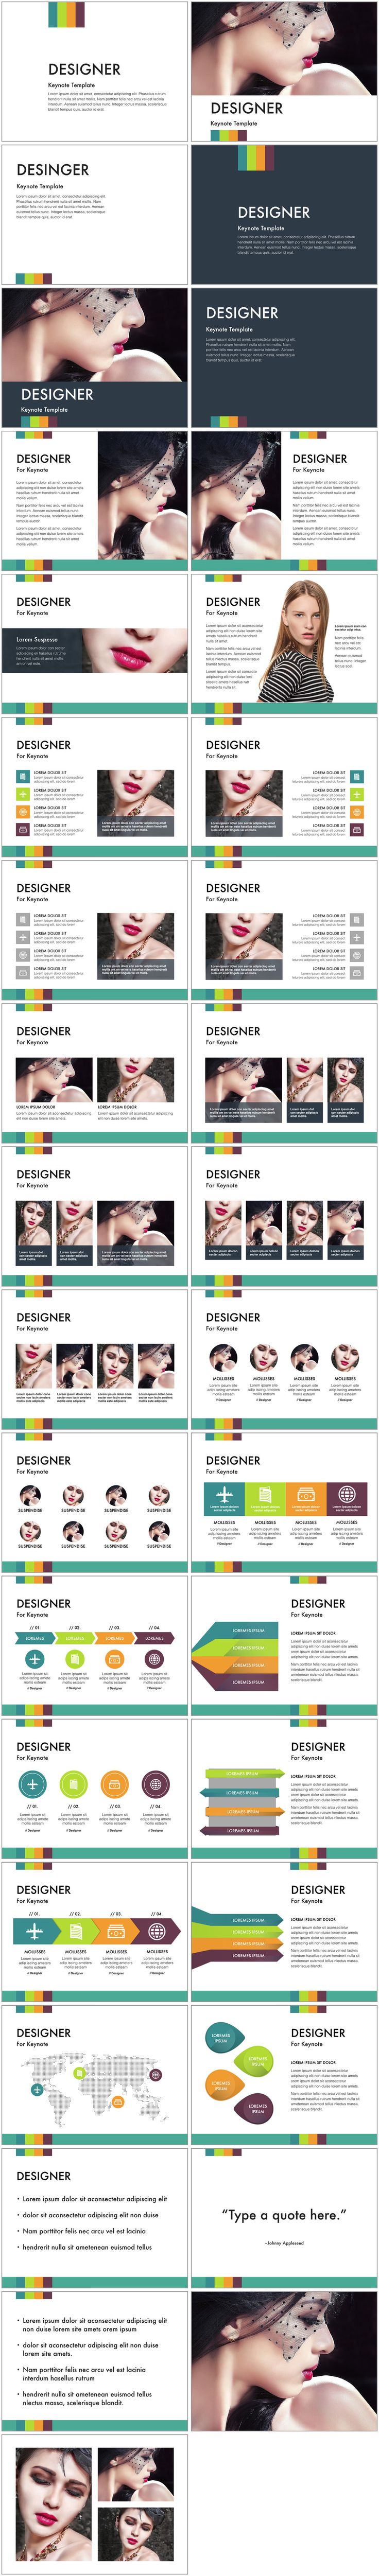 Designer Keynote Template. Presentation designs by Deeda Designs - take your presentation from standard to stunning with these professionally designed keynote themes.